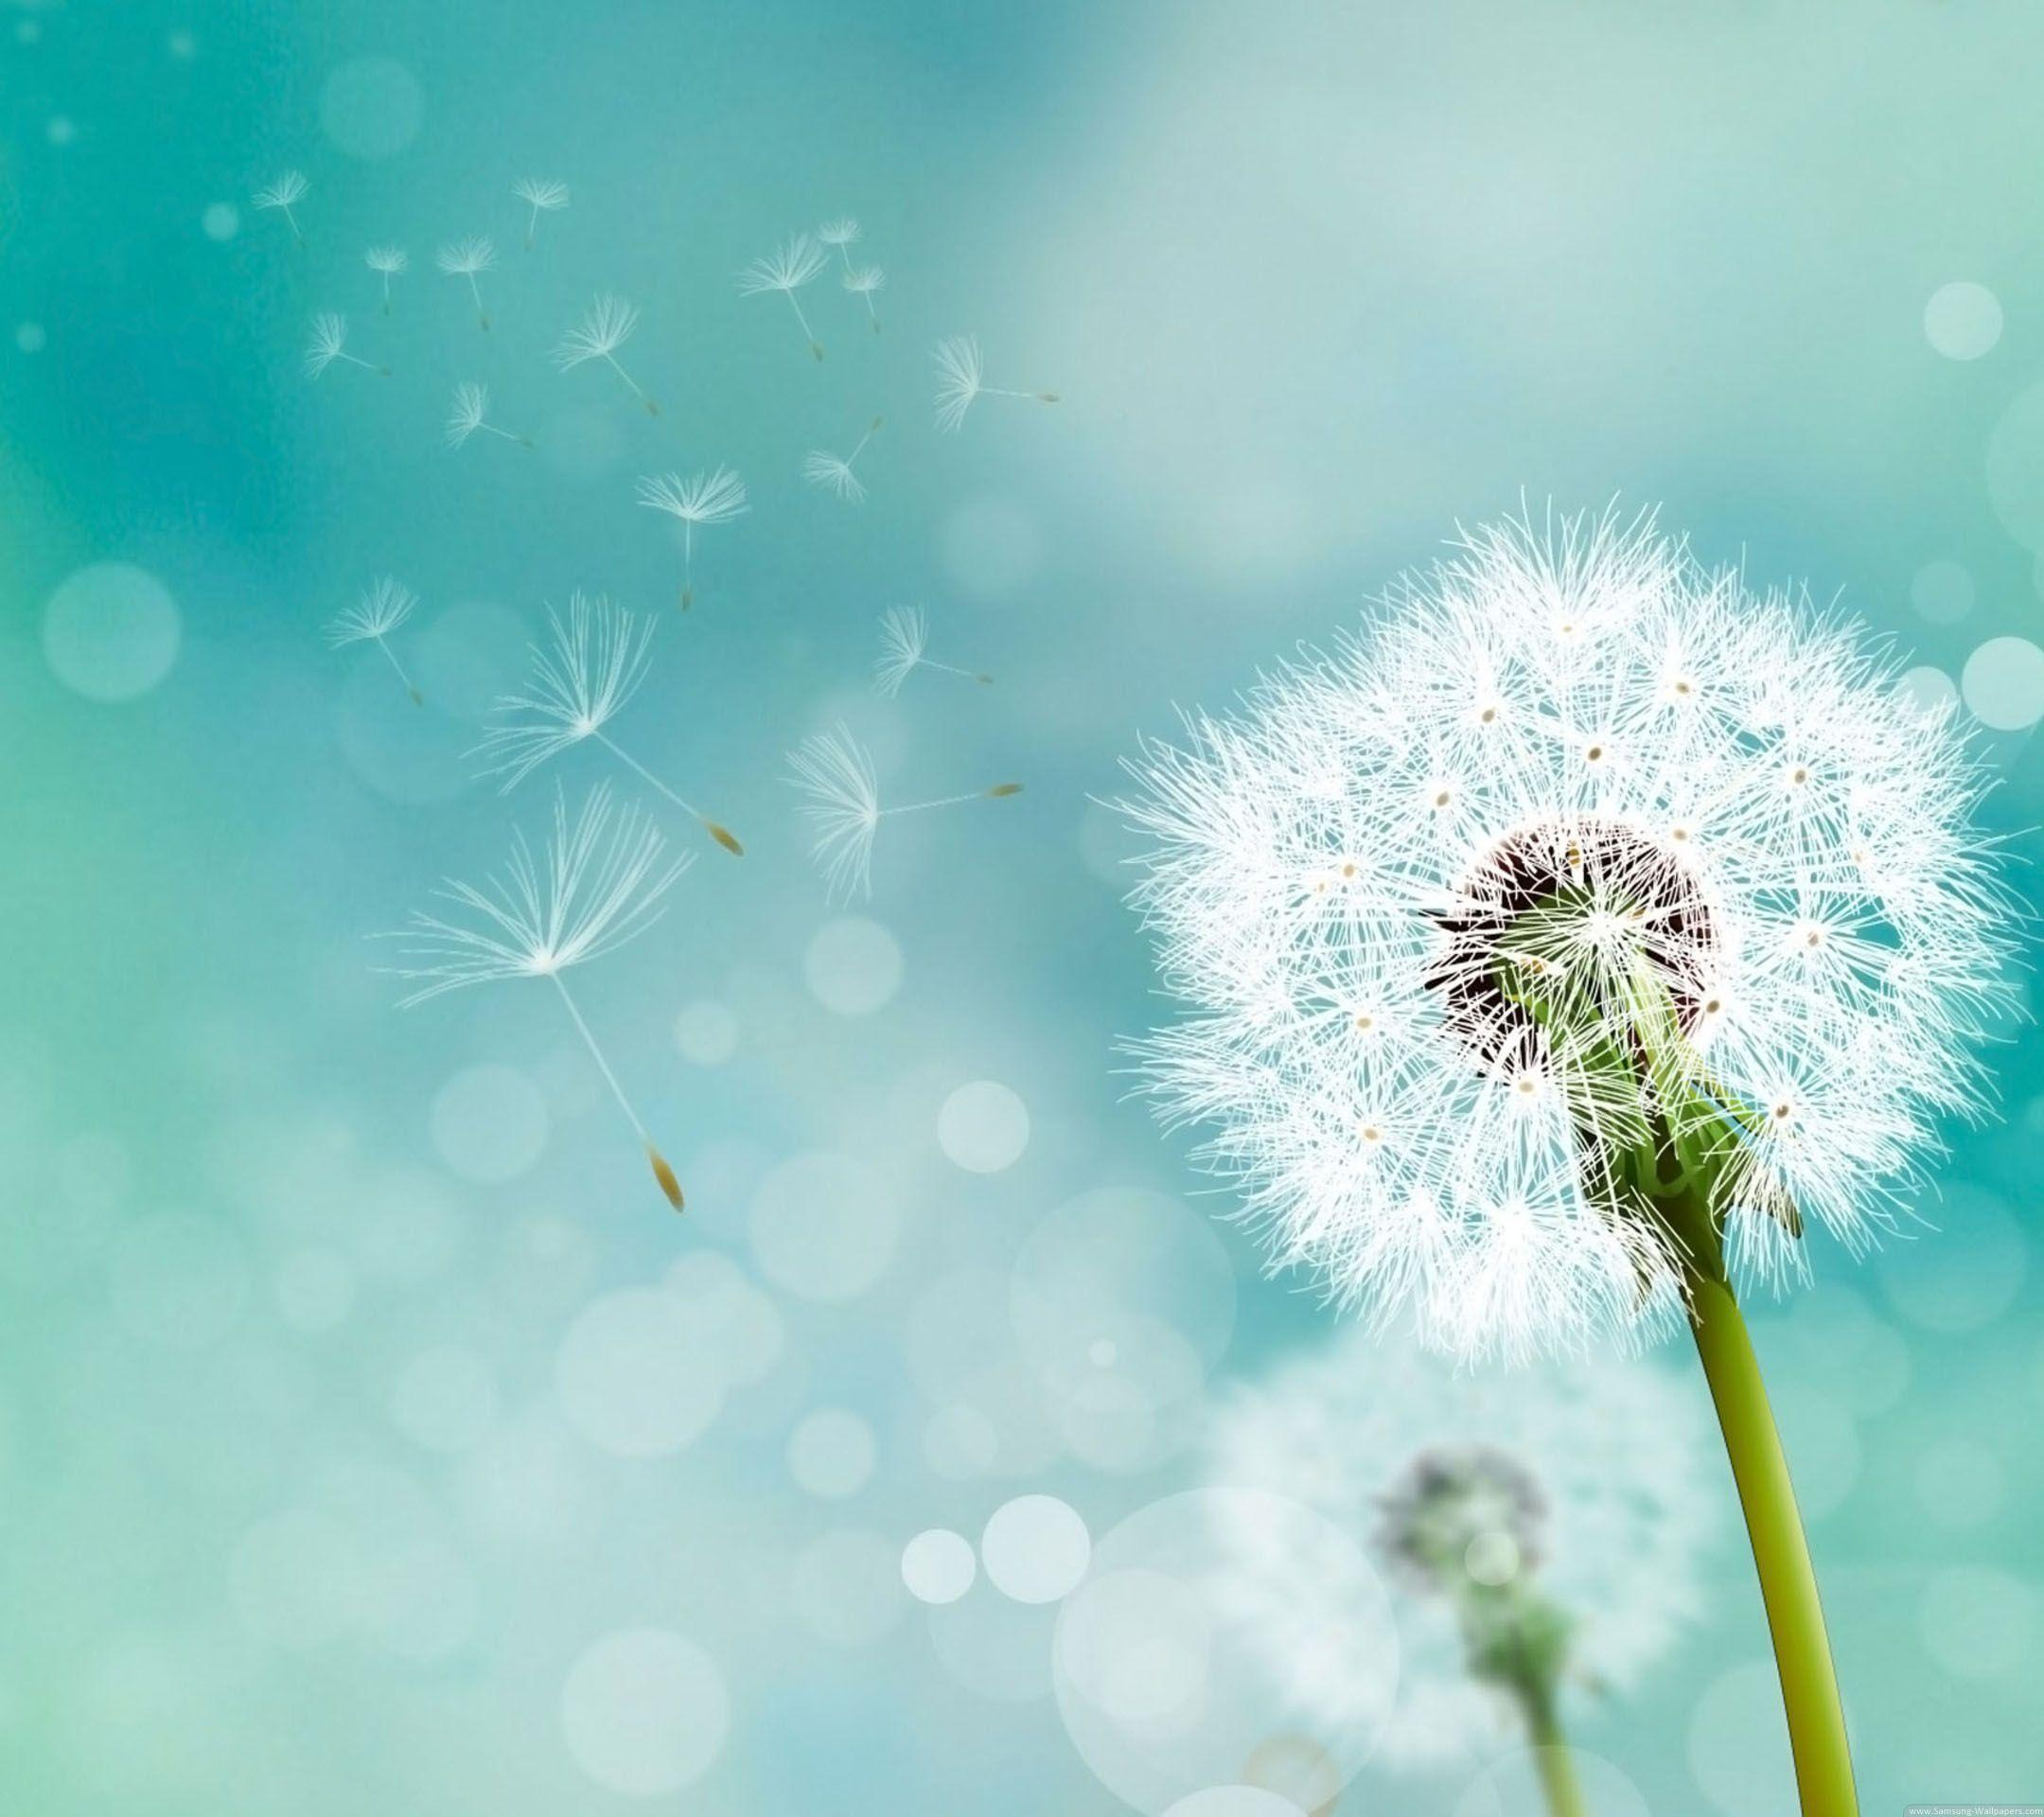 Image For > Blowing Dandelion Wallpapers